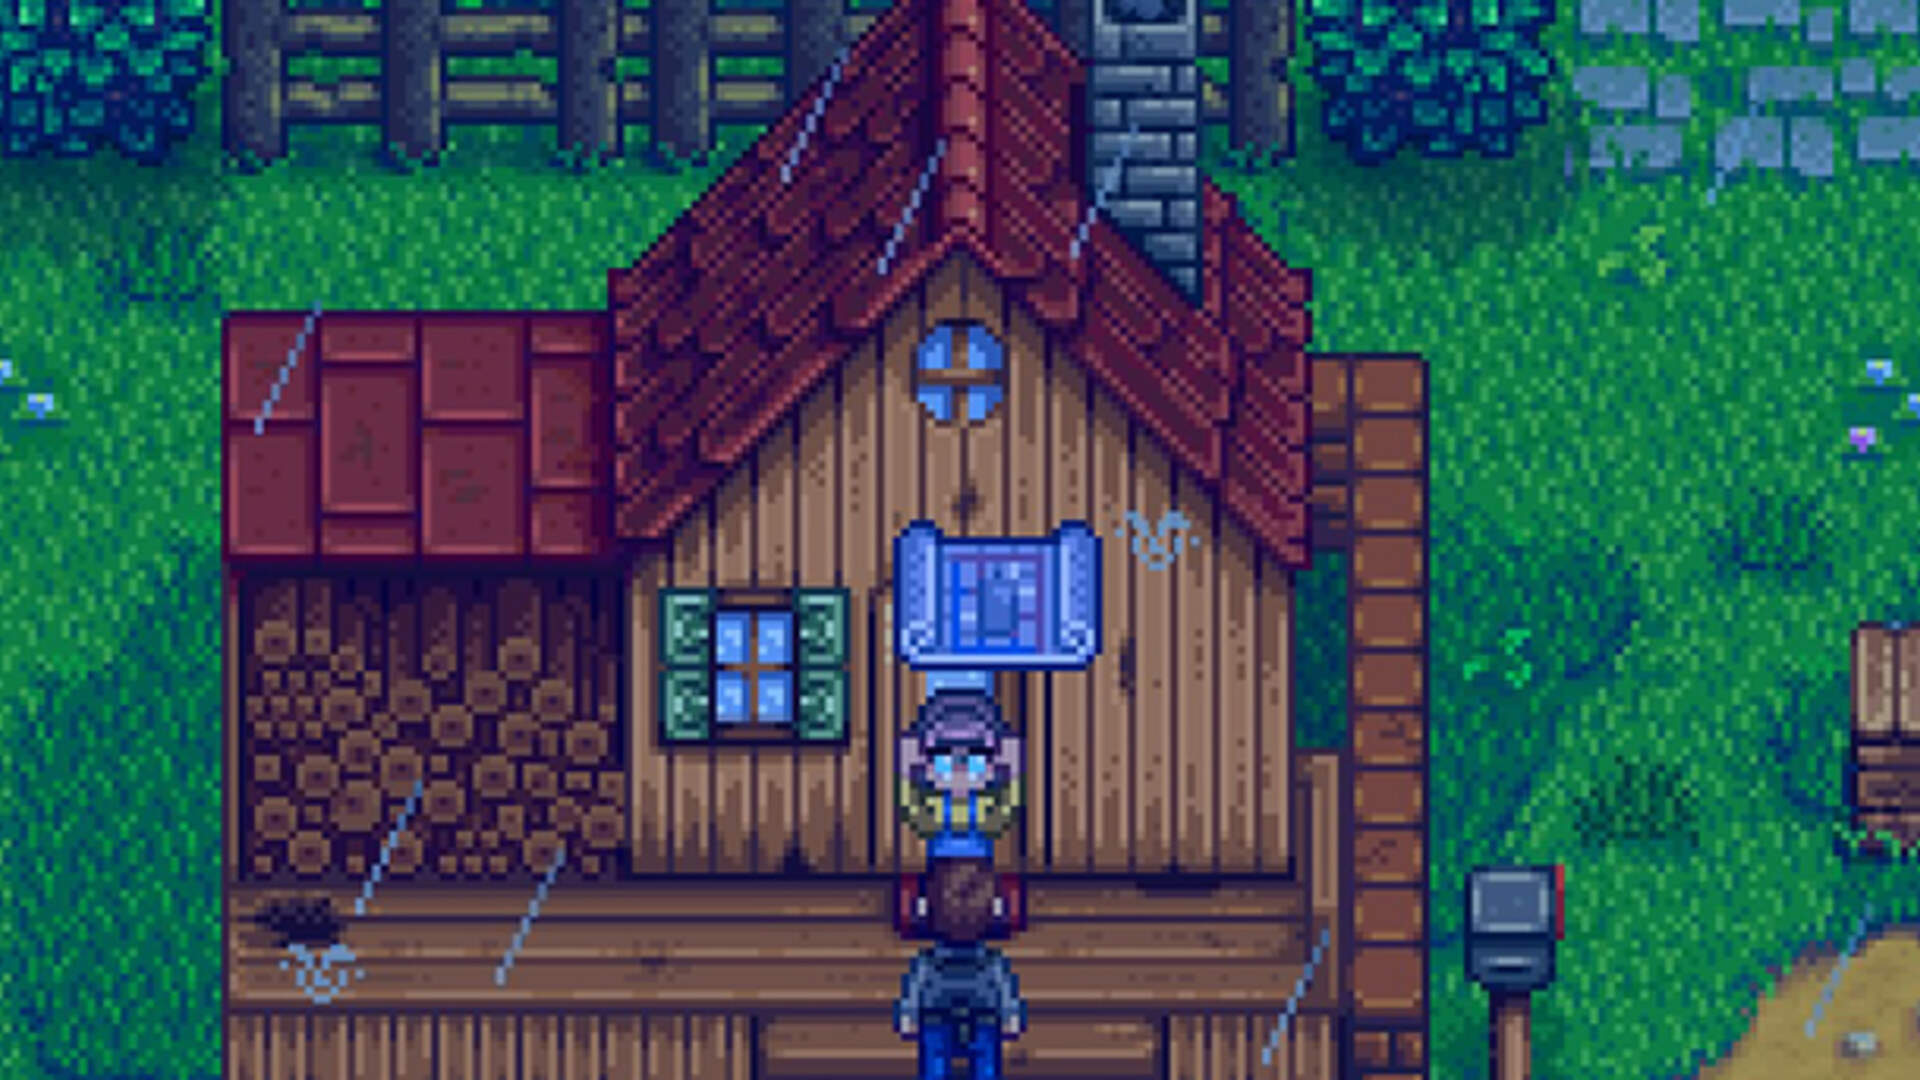 Life on the Farm, Part 2: The Distracted Humdrum of Stardew Valley